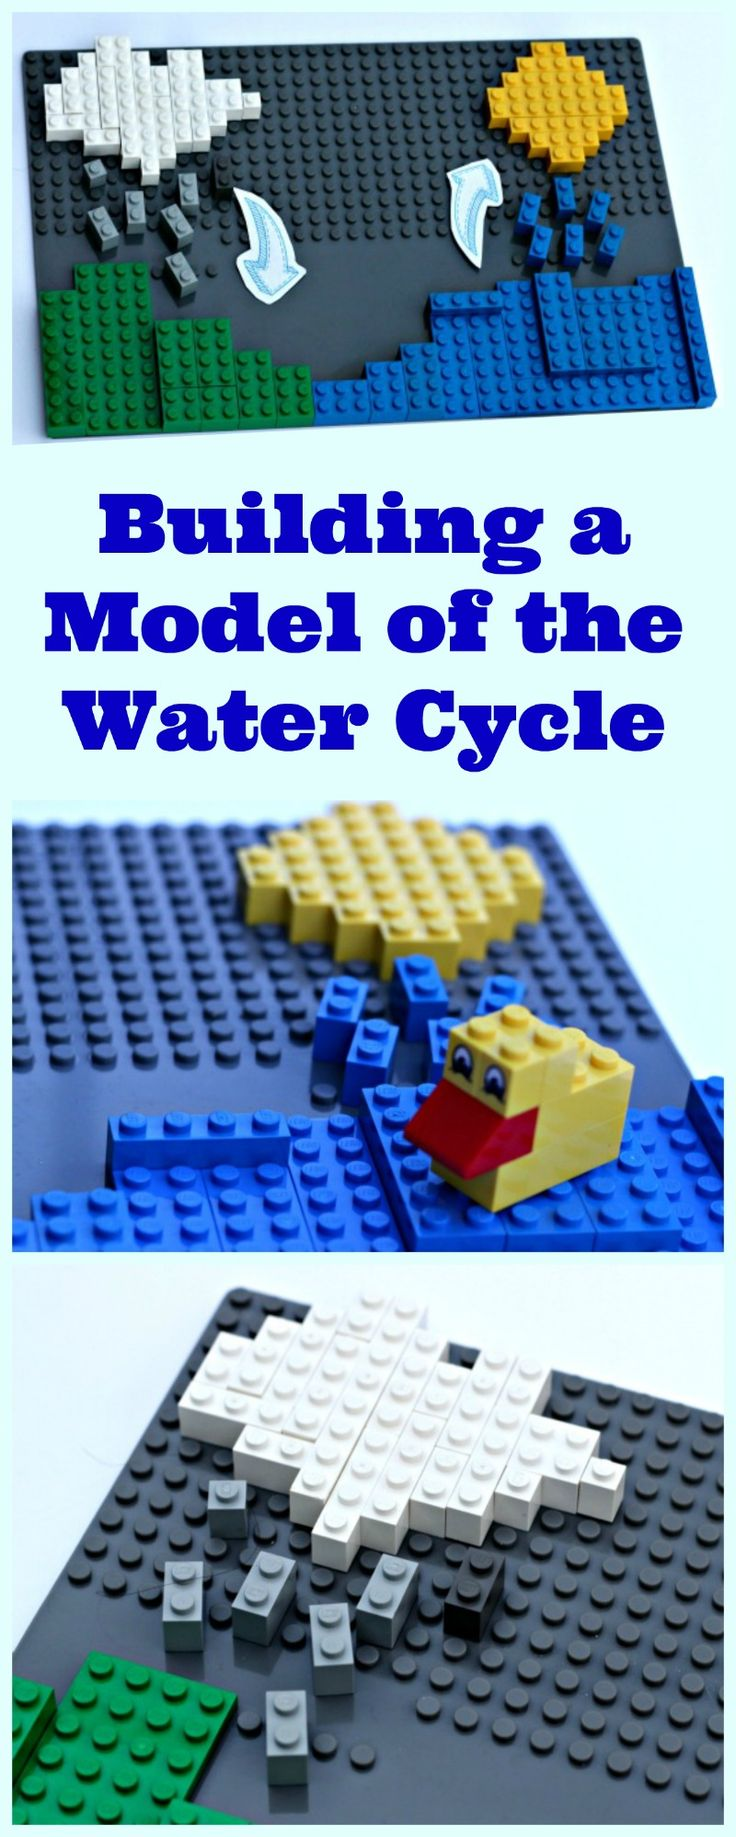 The Water Cycle: an easy science project for kids | LEGO science activity & model | elementary & middle school project